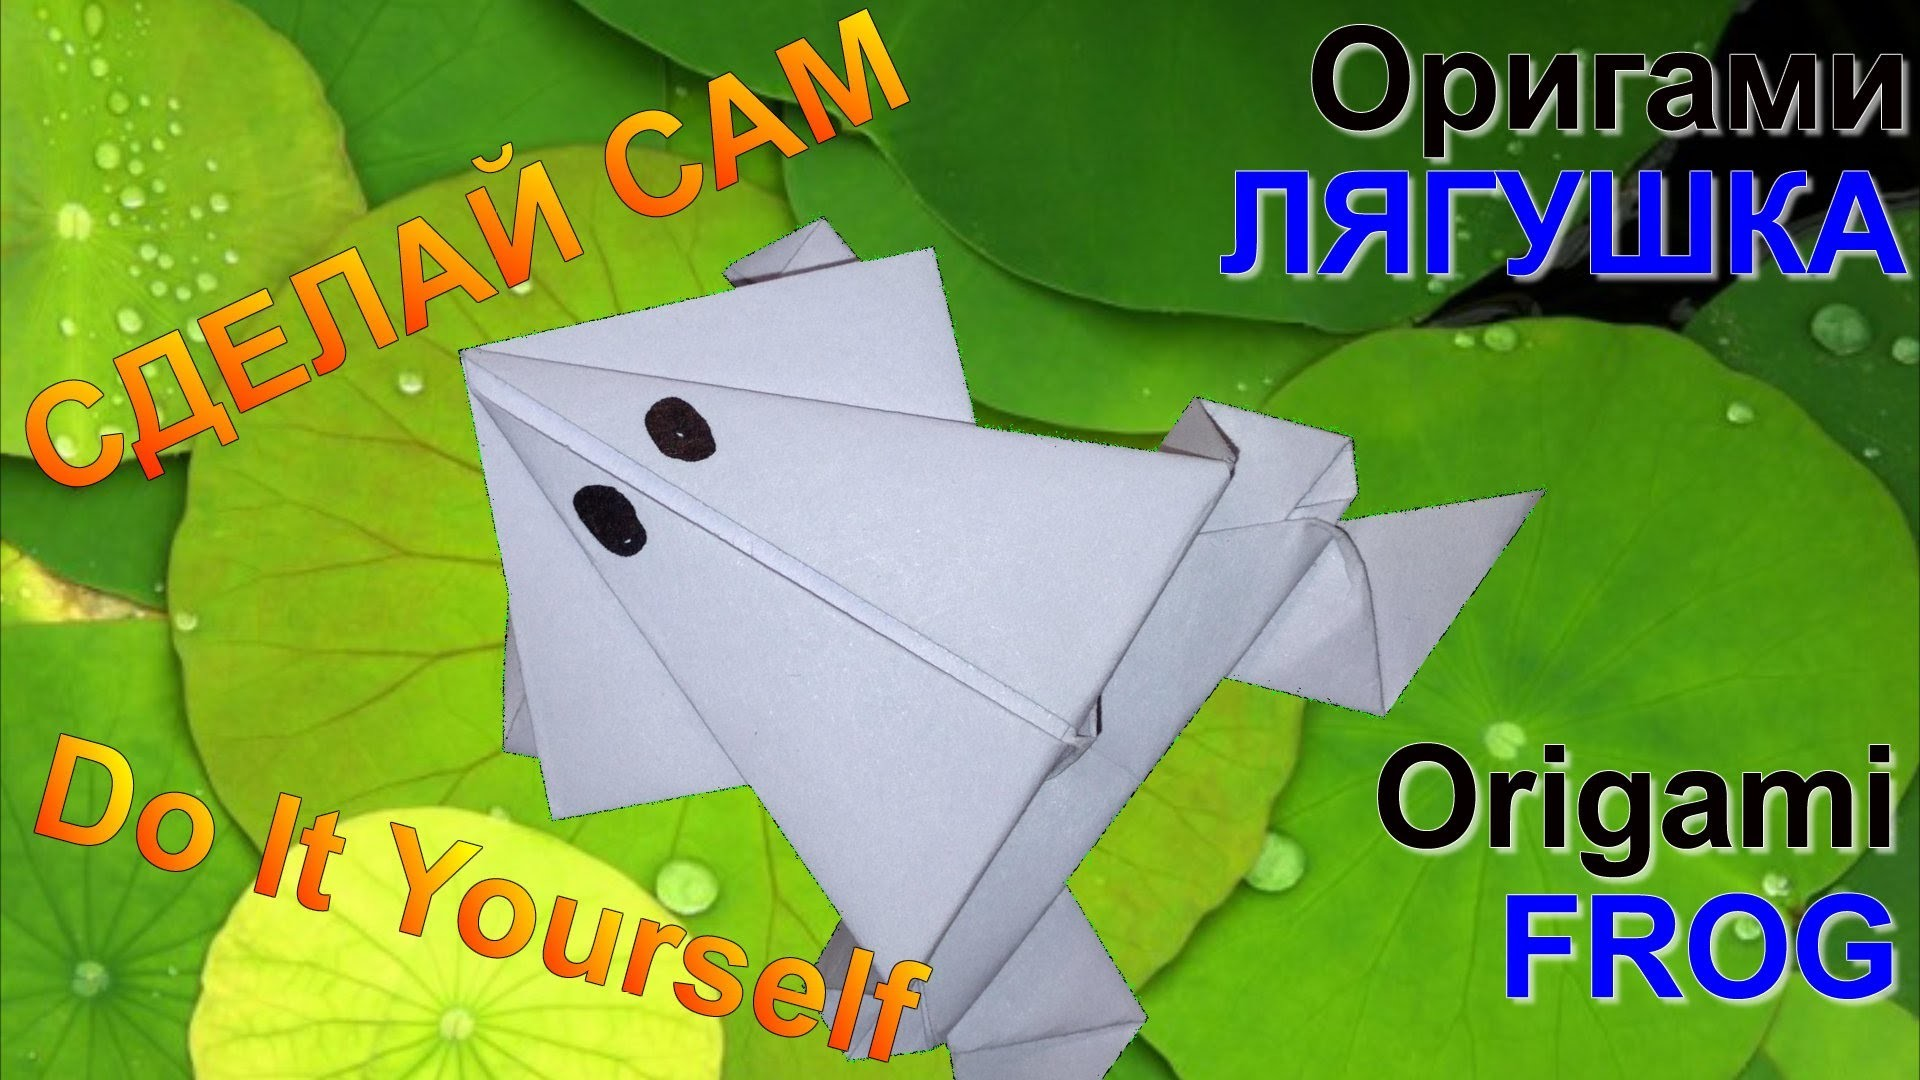 ОРИГАМИ ЛЯГУШКА. КАК СДЕЛАТЬ ИЗ БУМАГИ ОРИГАМИ ЛЯГУШКУ. ORIGAMI FROG. How to make origami paper FROG